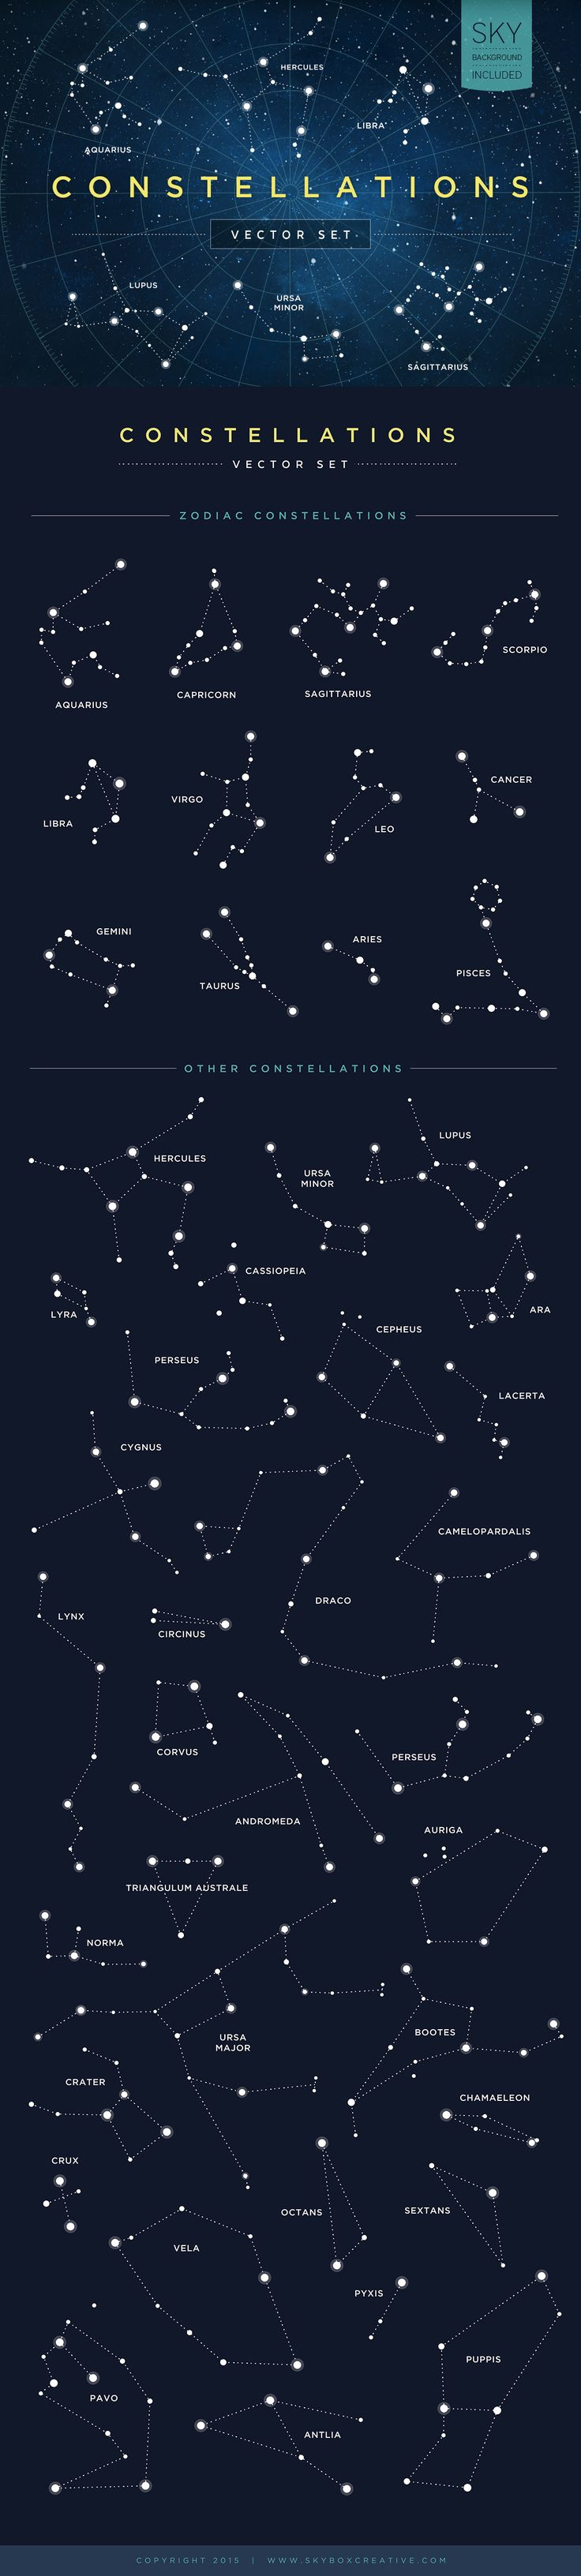 Look to the sky for inspiration. #constellations